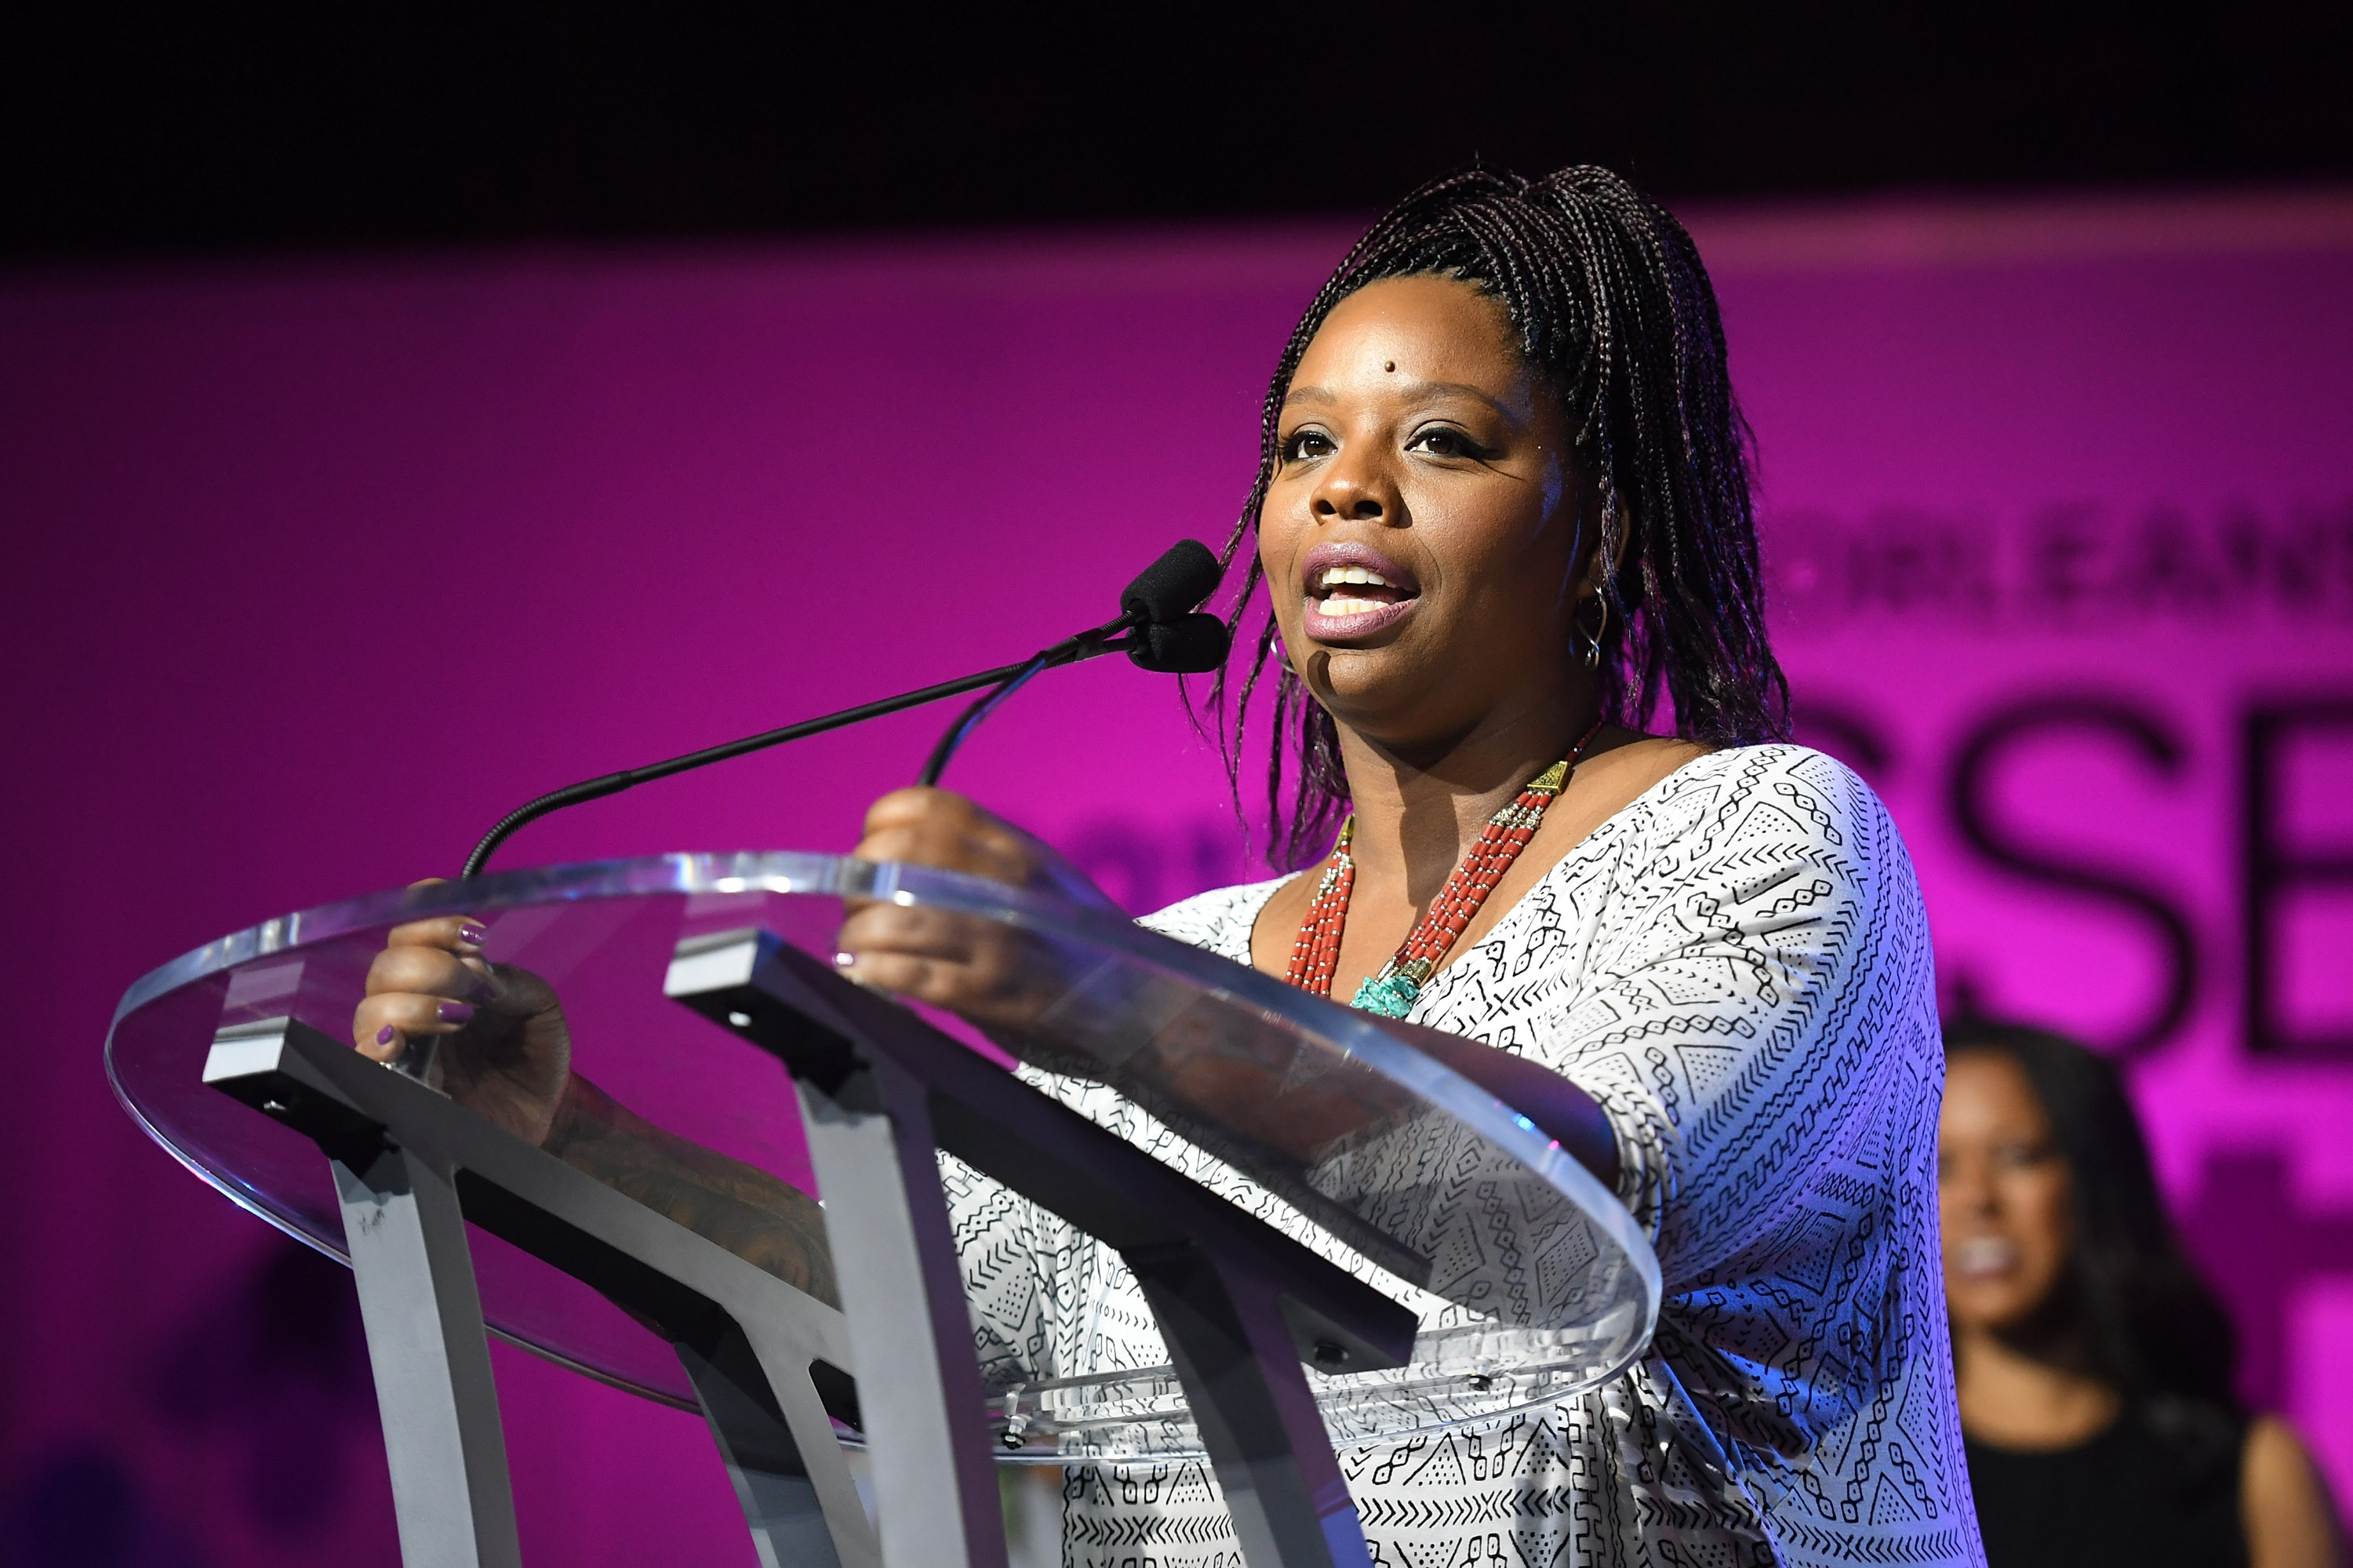 Patrisse Cullors speaks onstage at the 2017 ESSENCE Festival presented by Coca-Cola at Ernest N. Morial Convention Center on July 1, 2017 in New Orleans, Louisiana.